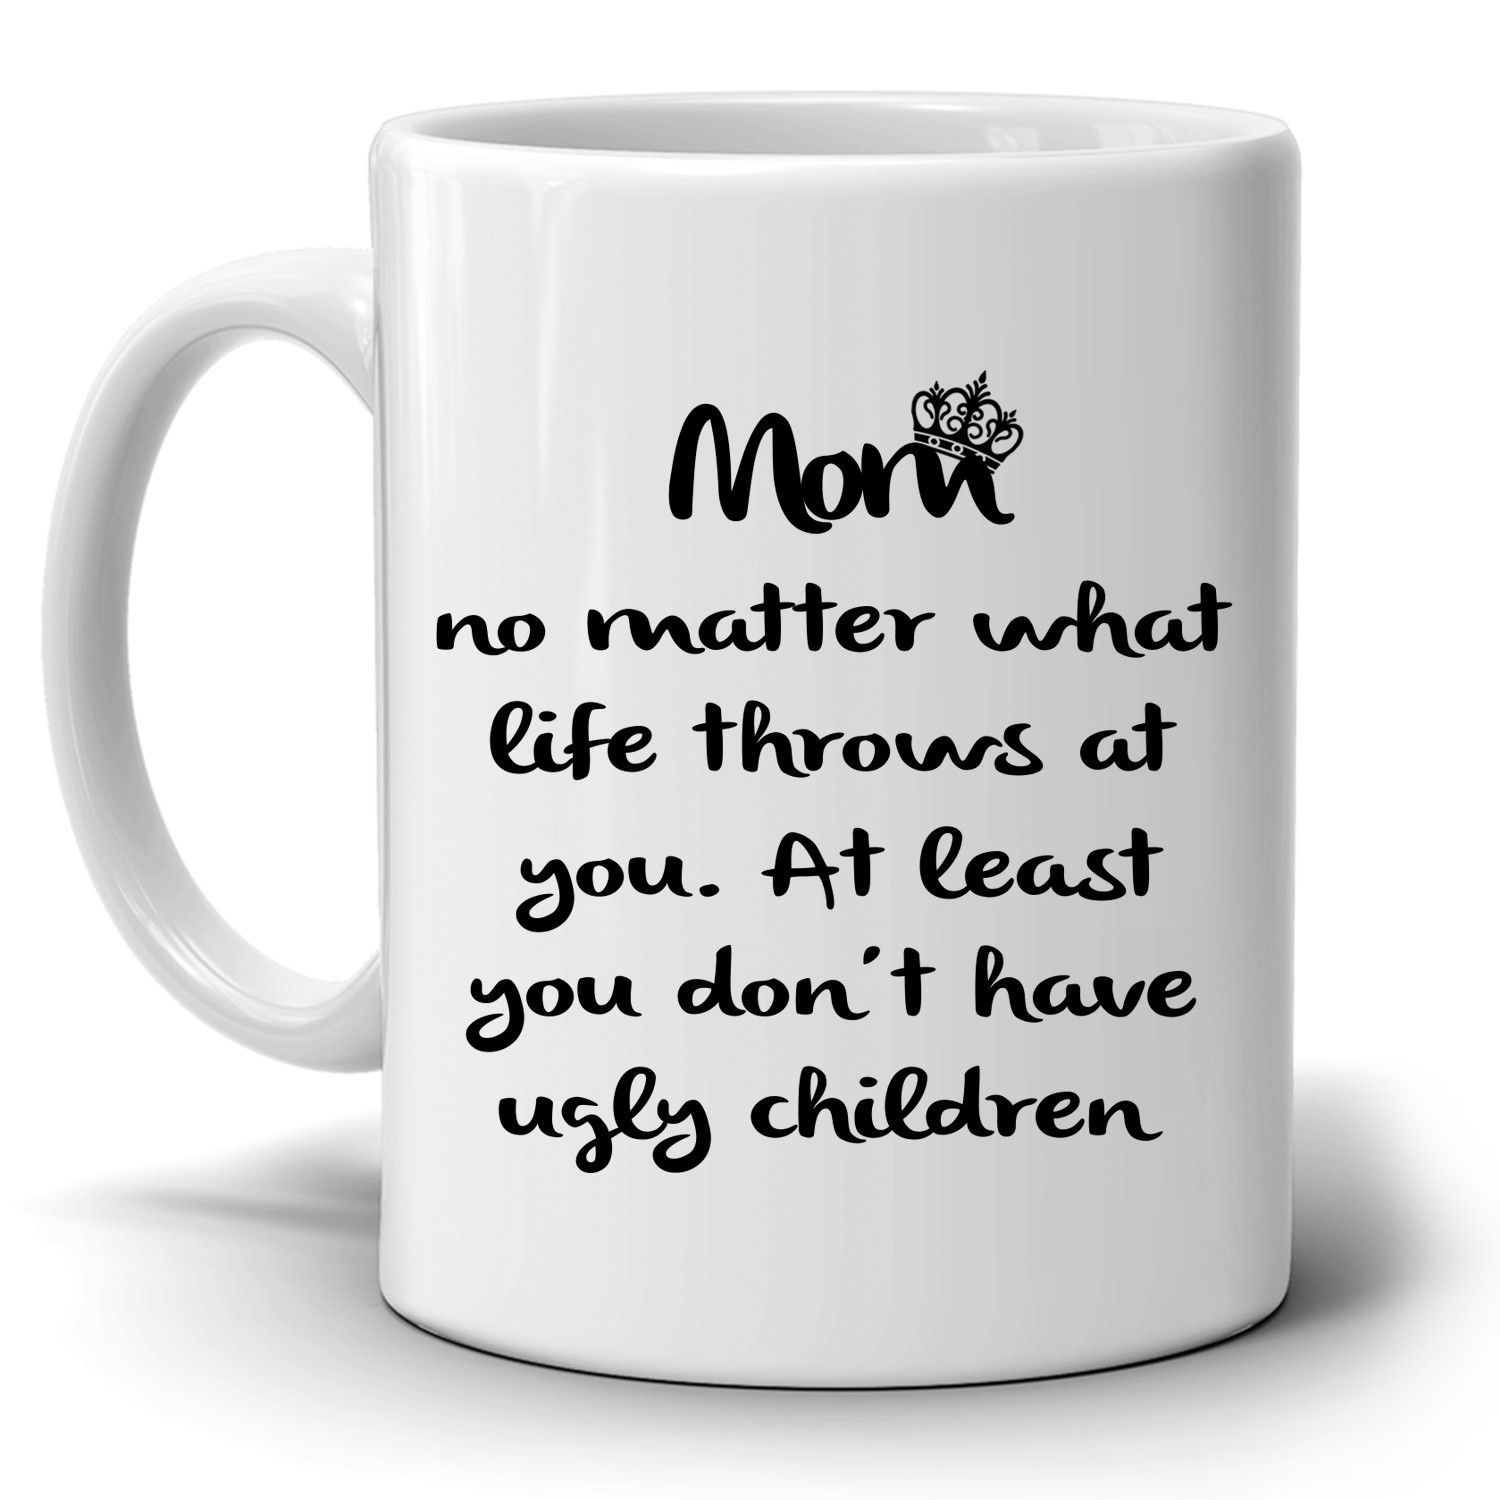 Funny Mother Daughter Gifts Coffee Mug, Unique Presents